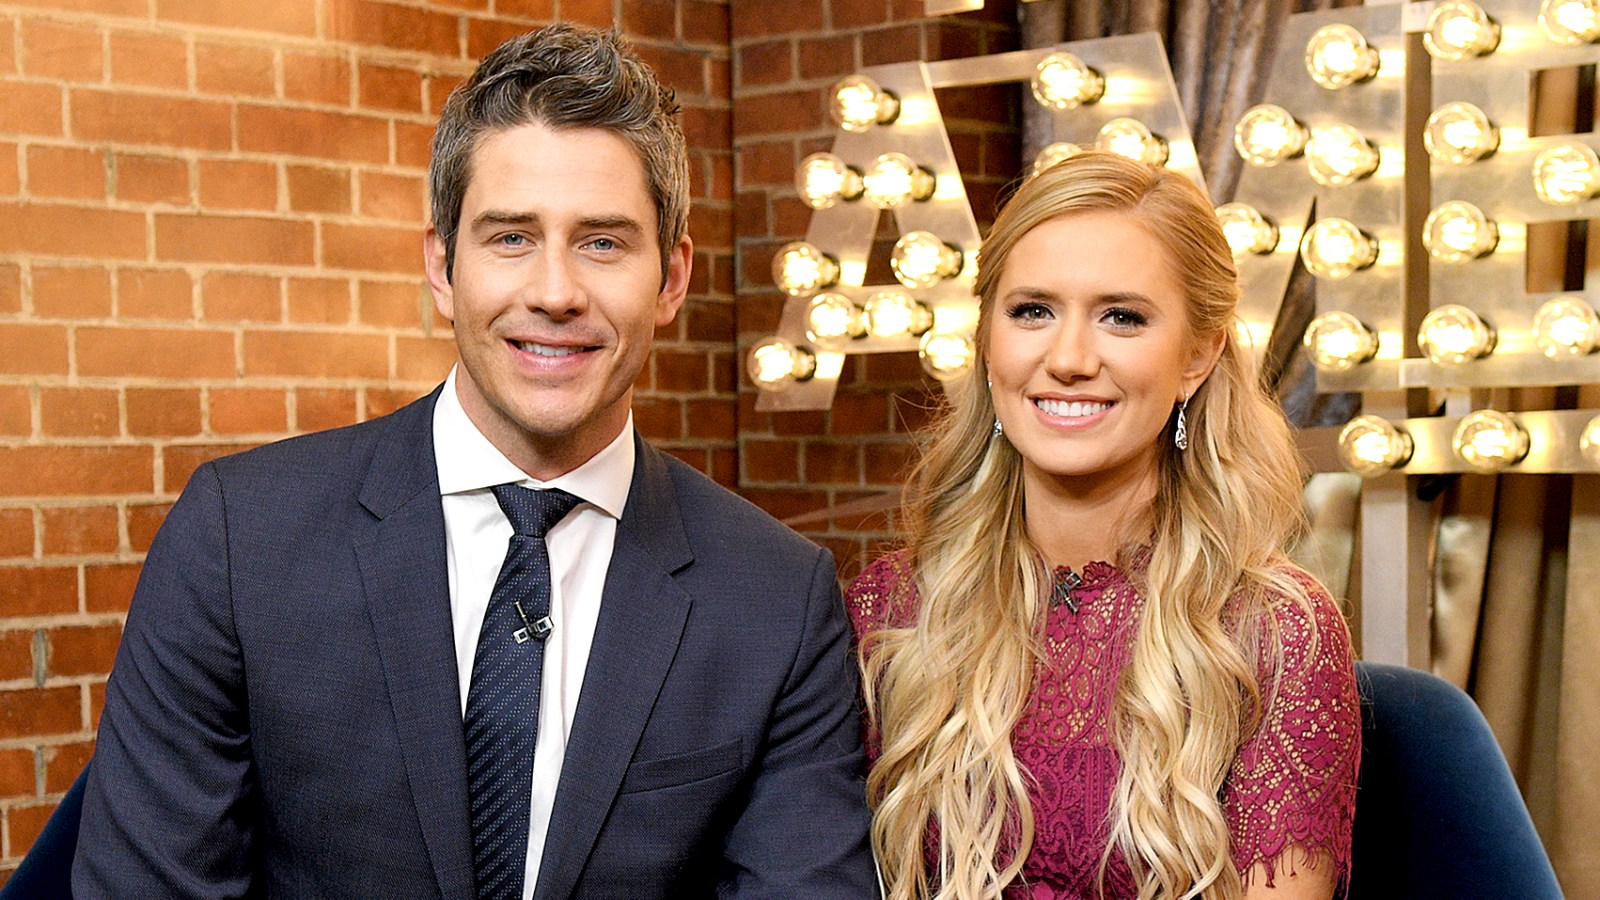 is the bachelor arie still dating lauren online dating positive aspects